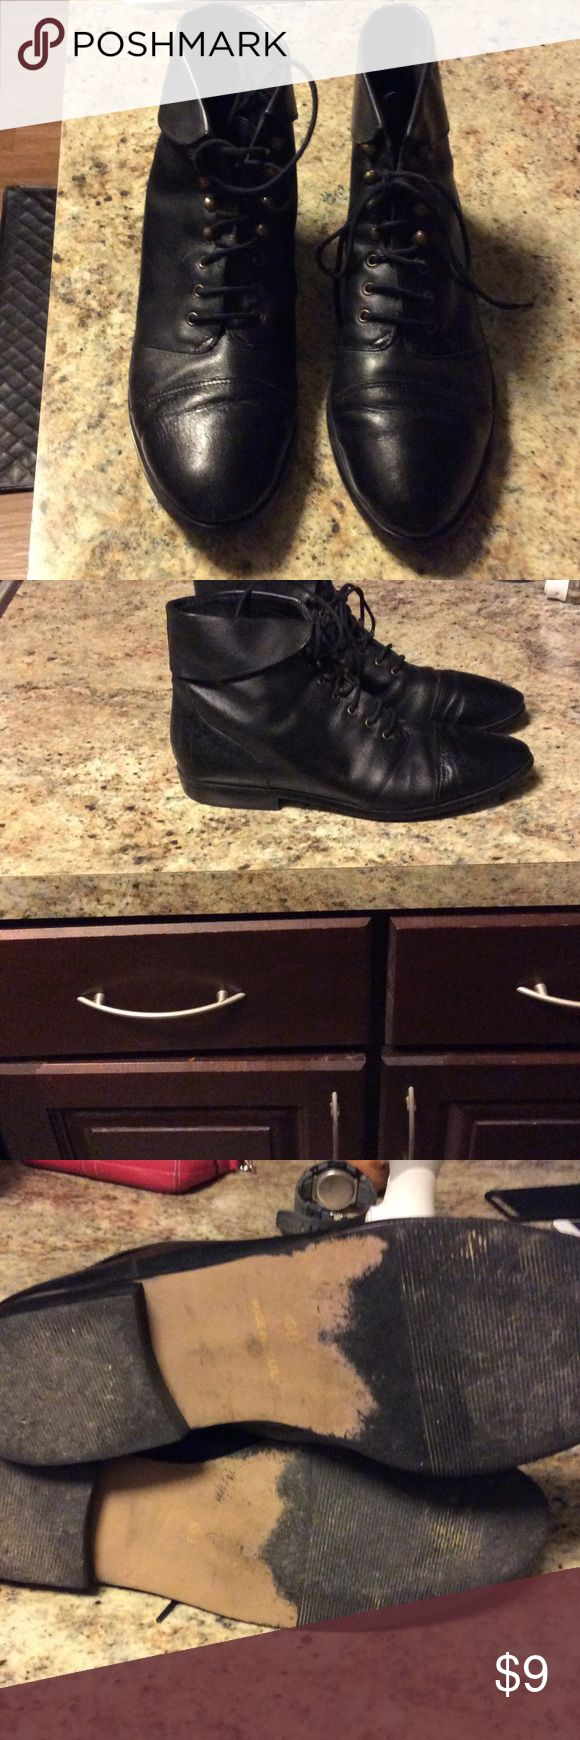 Ladies cute black leather/man-made ankle boots Ladies cute black ankle boots. Flip down collar on each boot for extra chic and cuteness! Shoes Ankle Boots & Booties